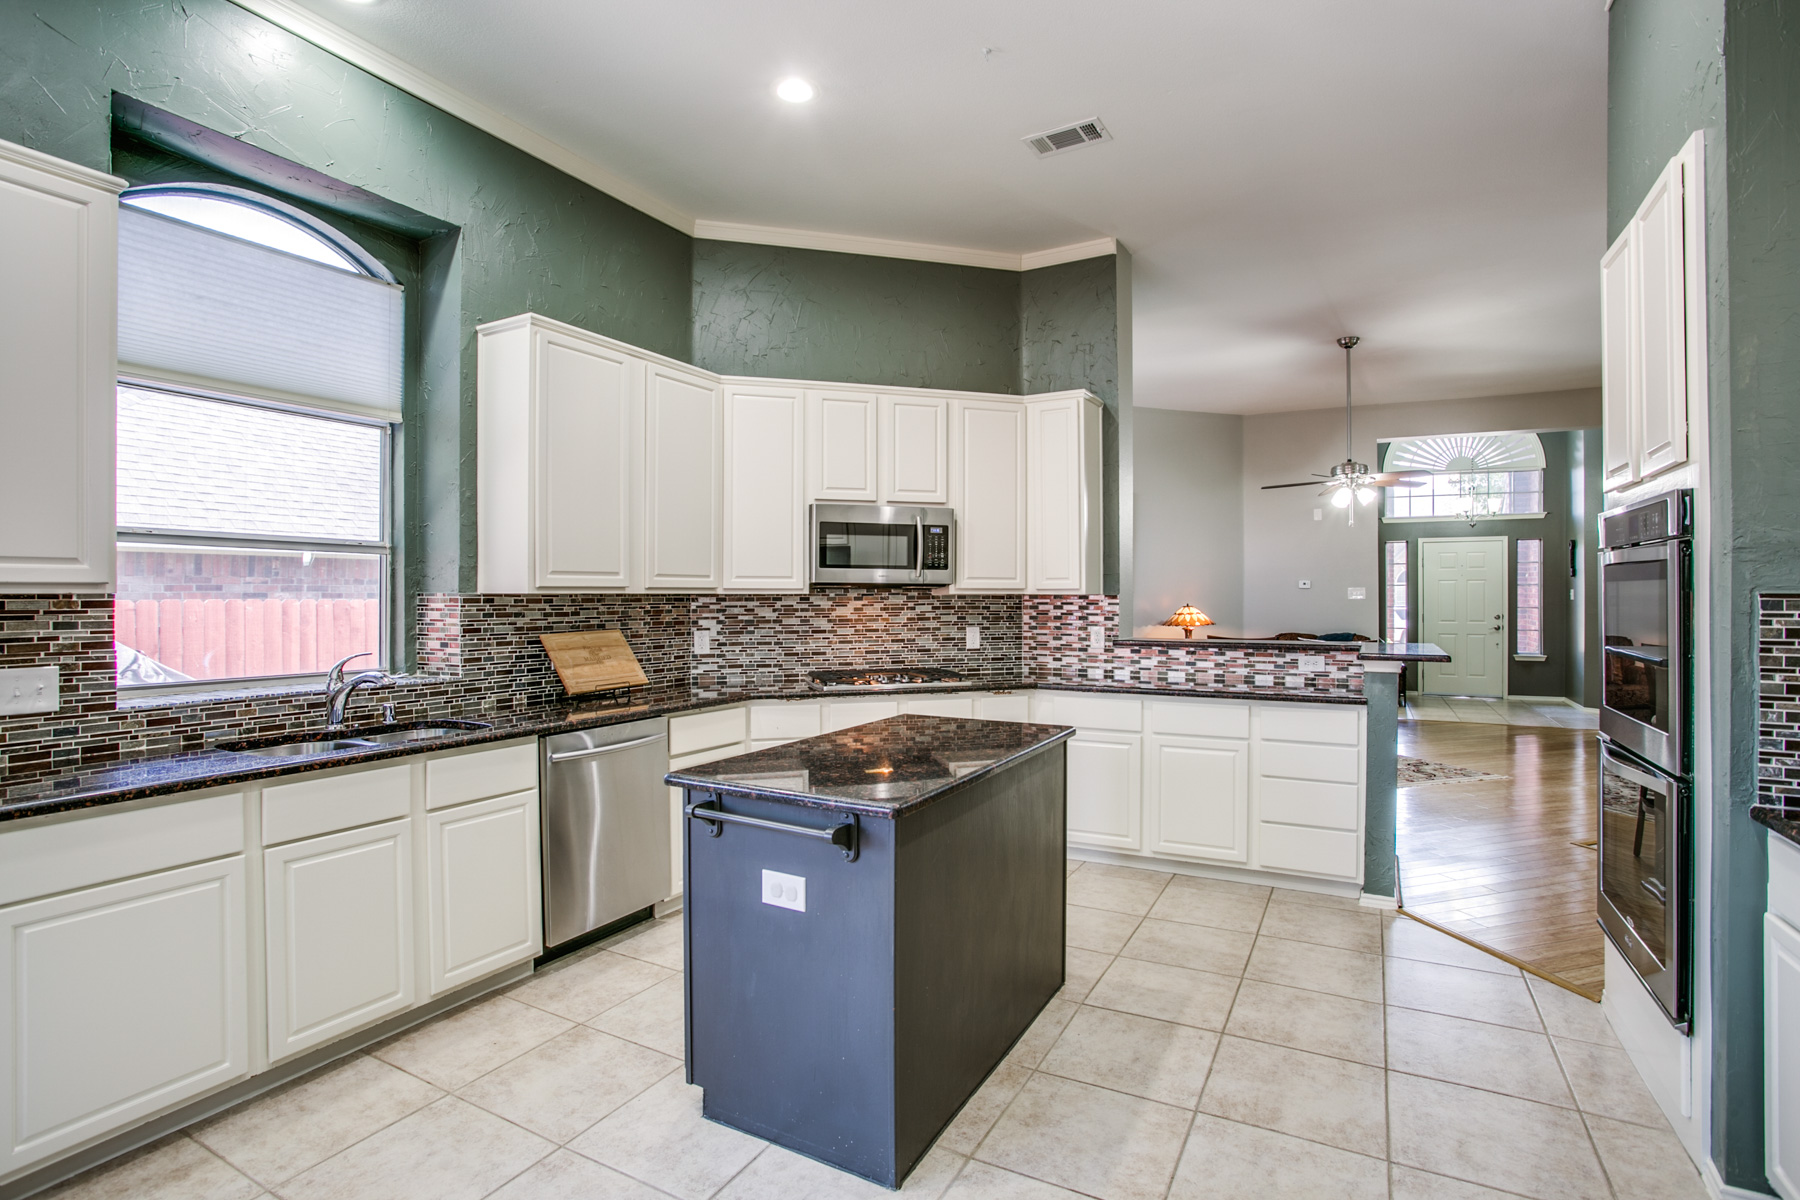 Single Family Home for Sale at Fresh and Open Single Story Gem 504 Rookery Ct McKinney, Texas 75070 United States